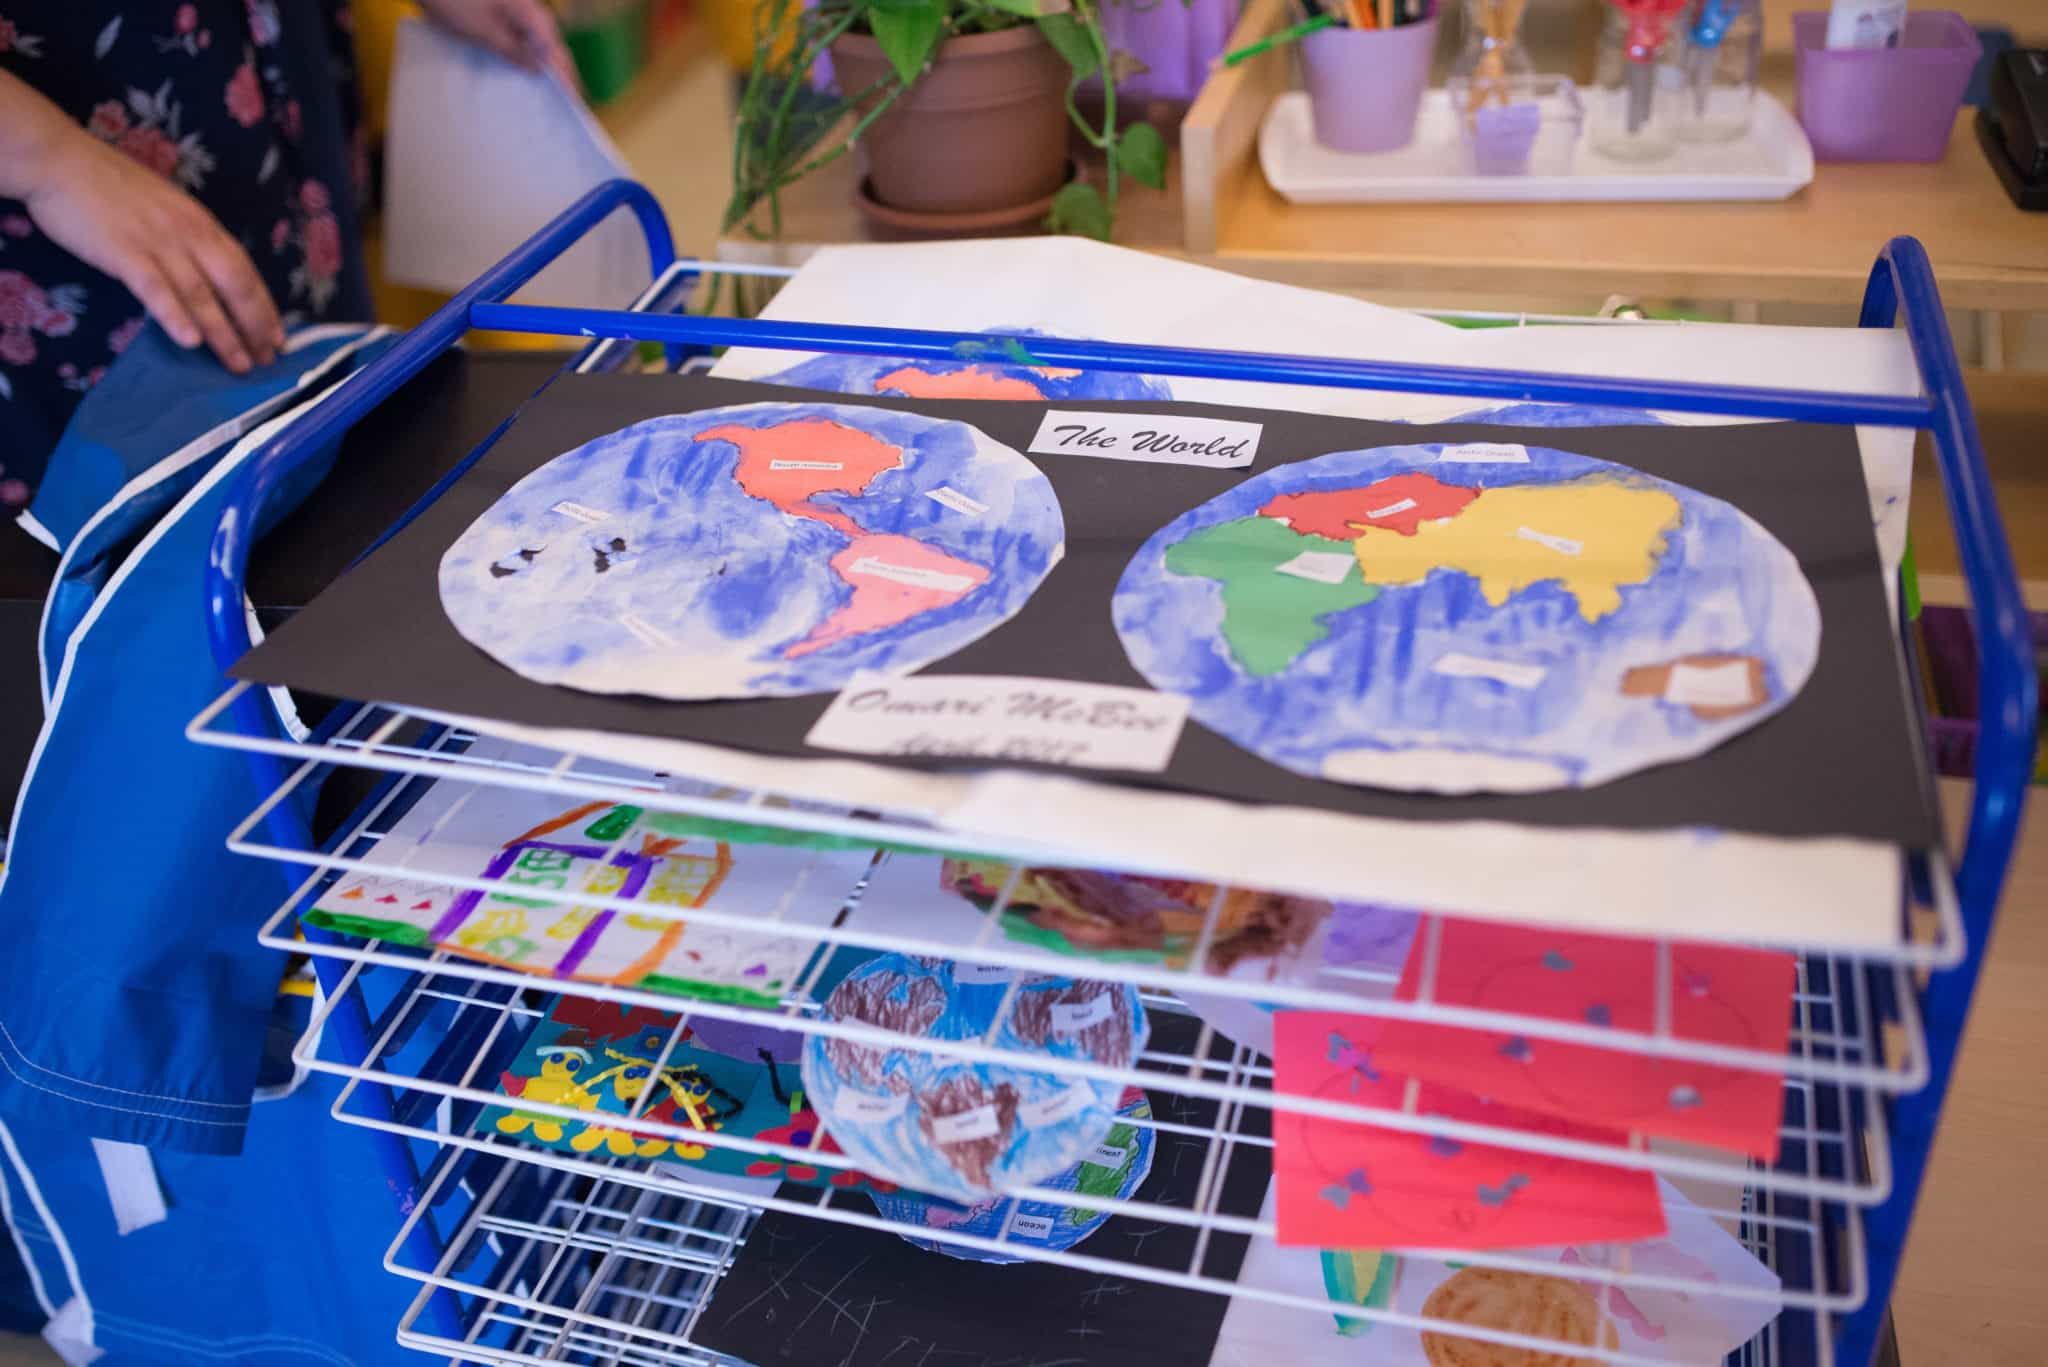 Children's House Art Drying Rack with Pin-Pushed Map of Continents, Globe